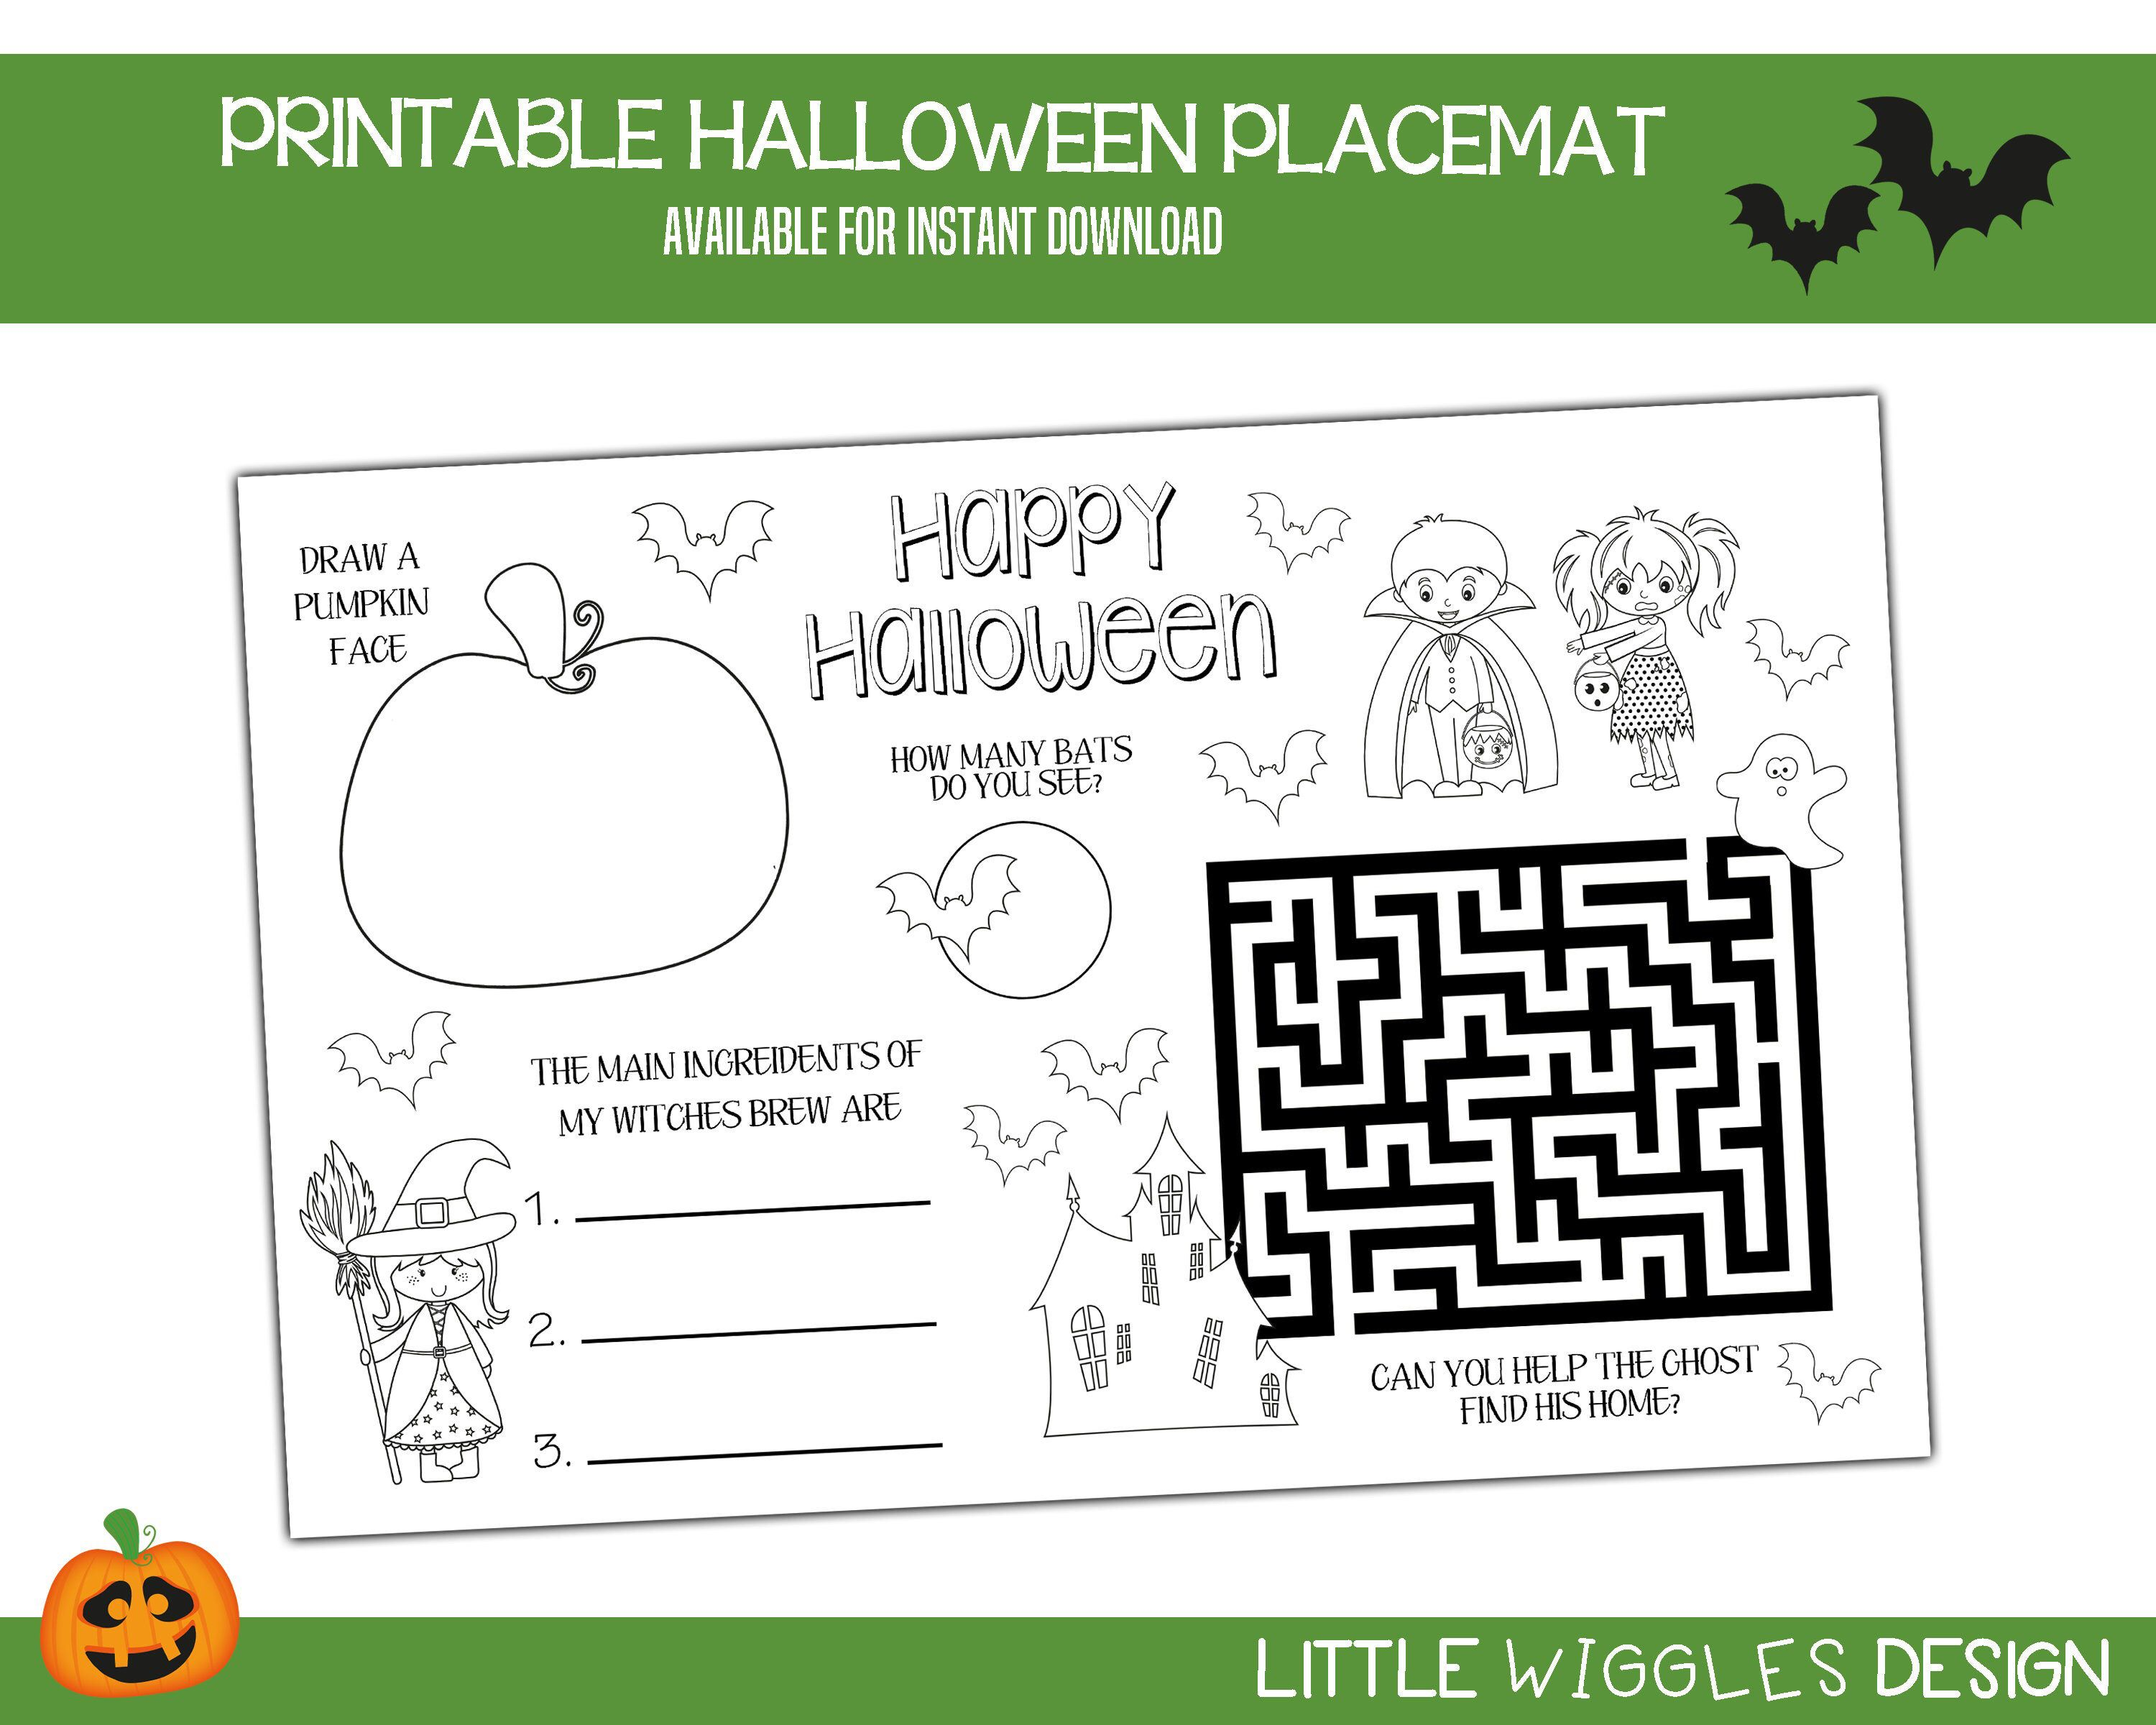 Printable Halloween Activity Halloween Placemat Large Halloween Coloring Page Https Halloween Activities For Kids Fun Halloween Activity Halloween Placemats